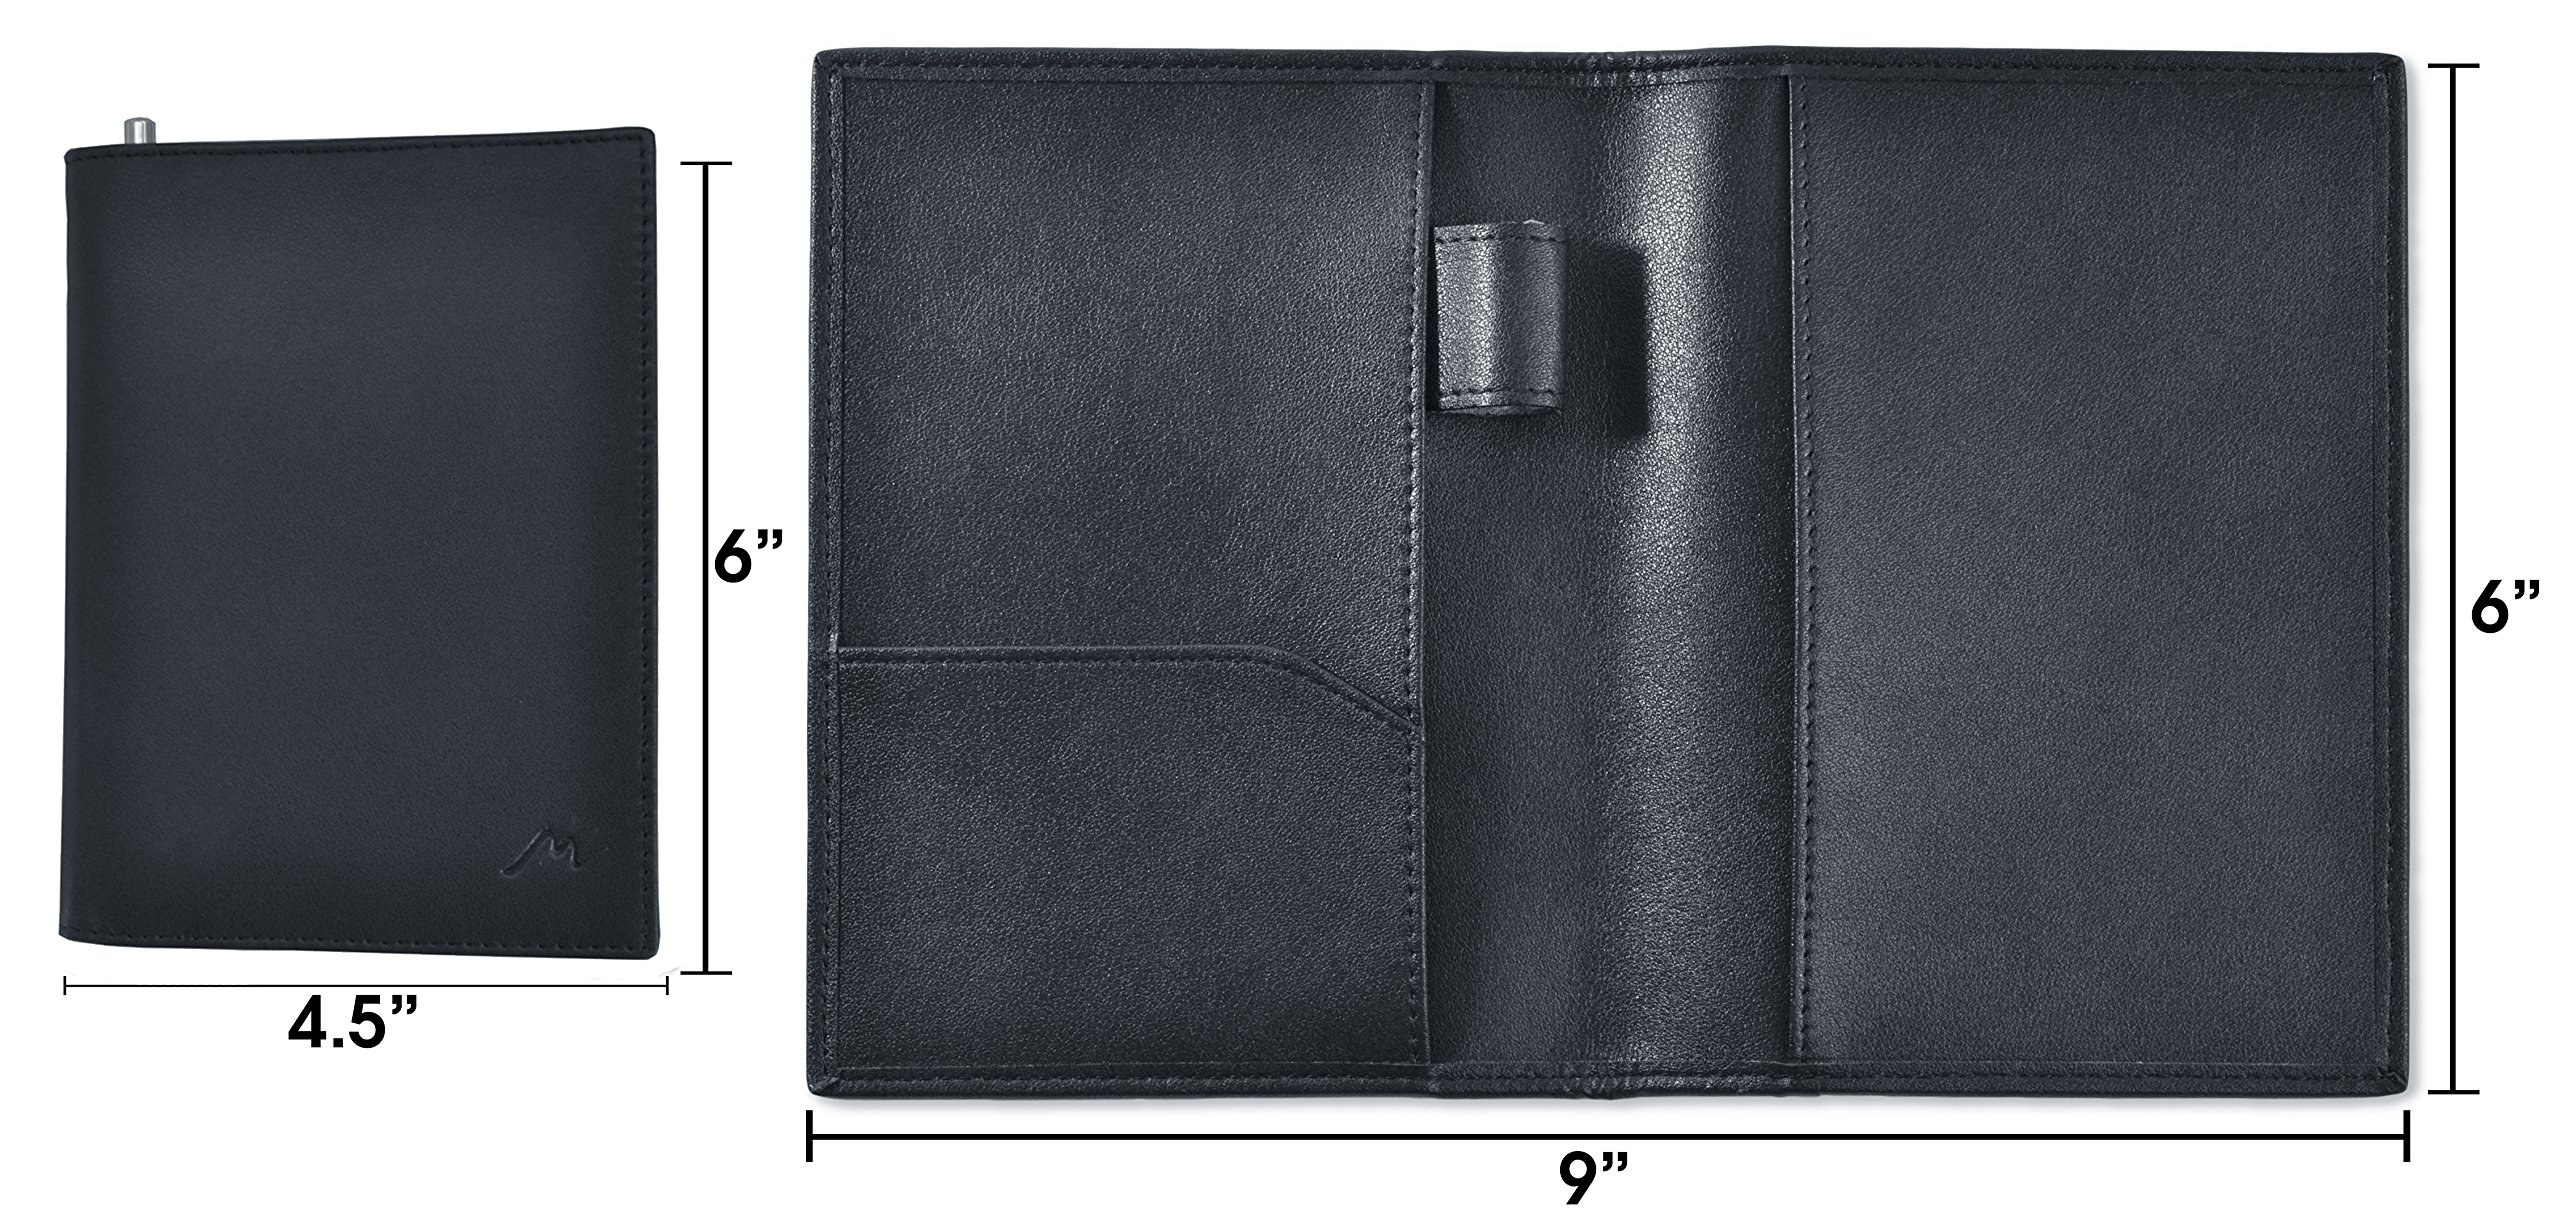 Field Notes/Moleskine Pocket Notebook Cover by Metier Life | Canvas with Vegan Leather | Fits Journals 3.5'' X 5.5'' | With Included Metier Life Notebook and Metier Pen (Vegan Leather Black) by Metier Life (Image #3)